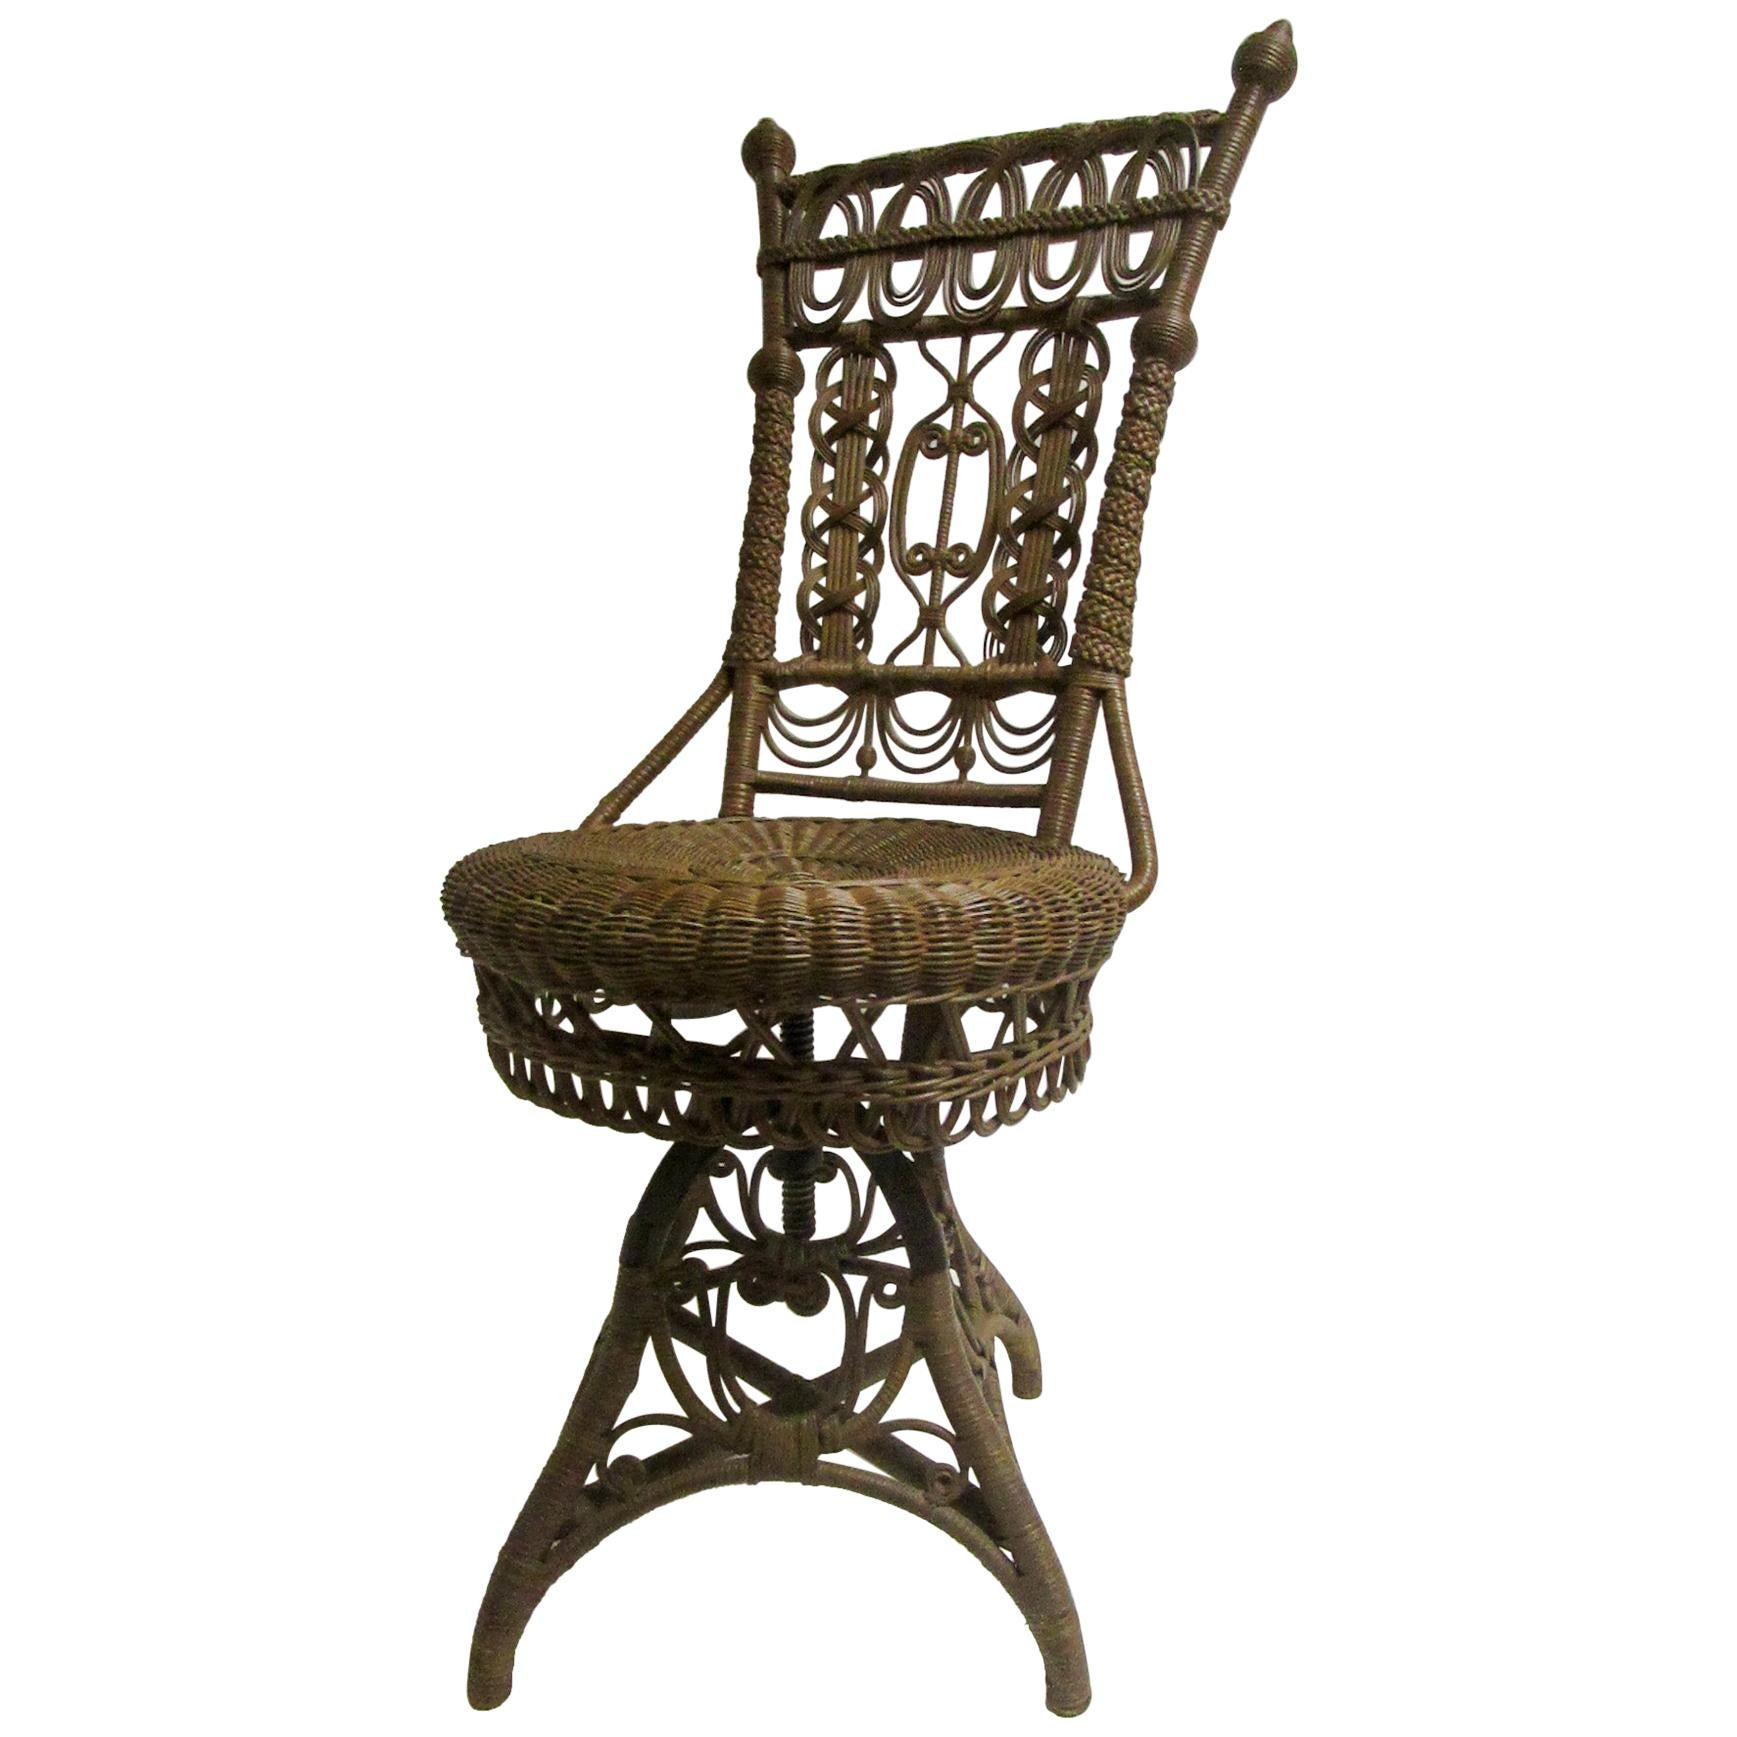 19th Century Heywood Bros. and Wakefield Co. Natural Wicker Swivel Piano Chair